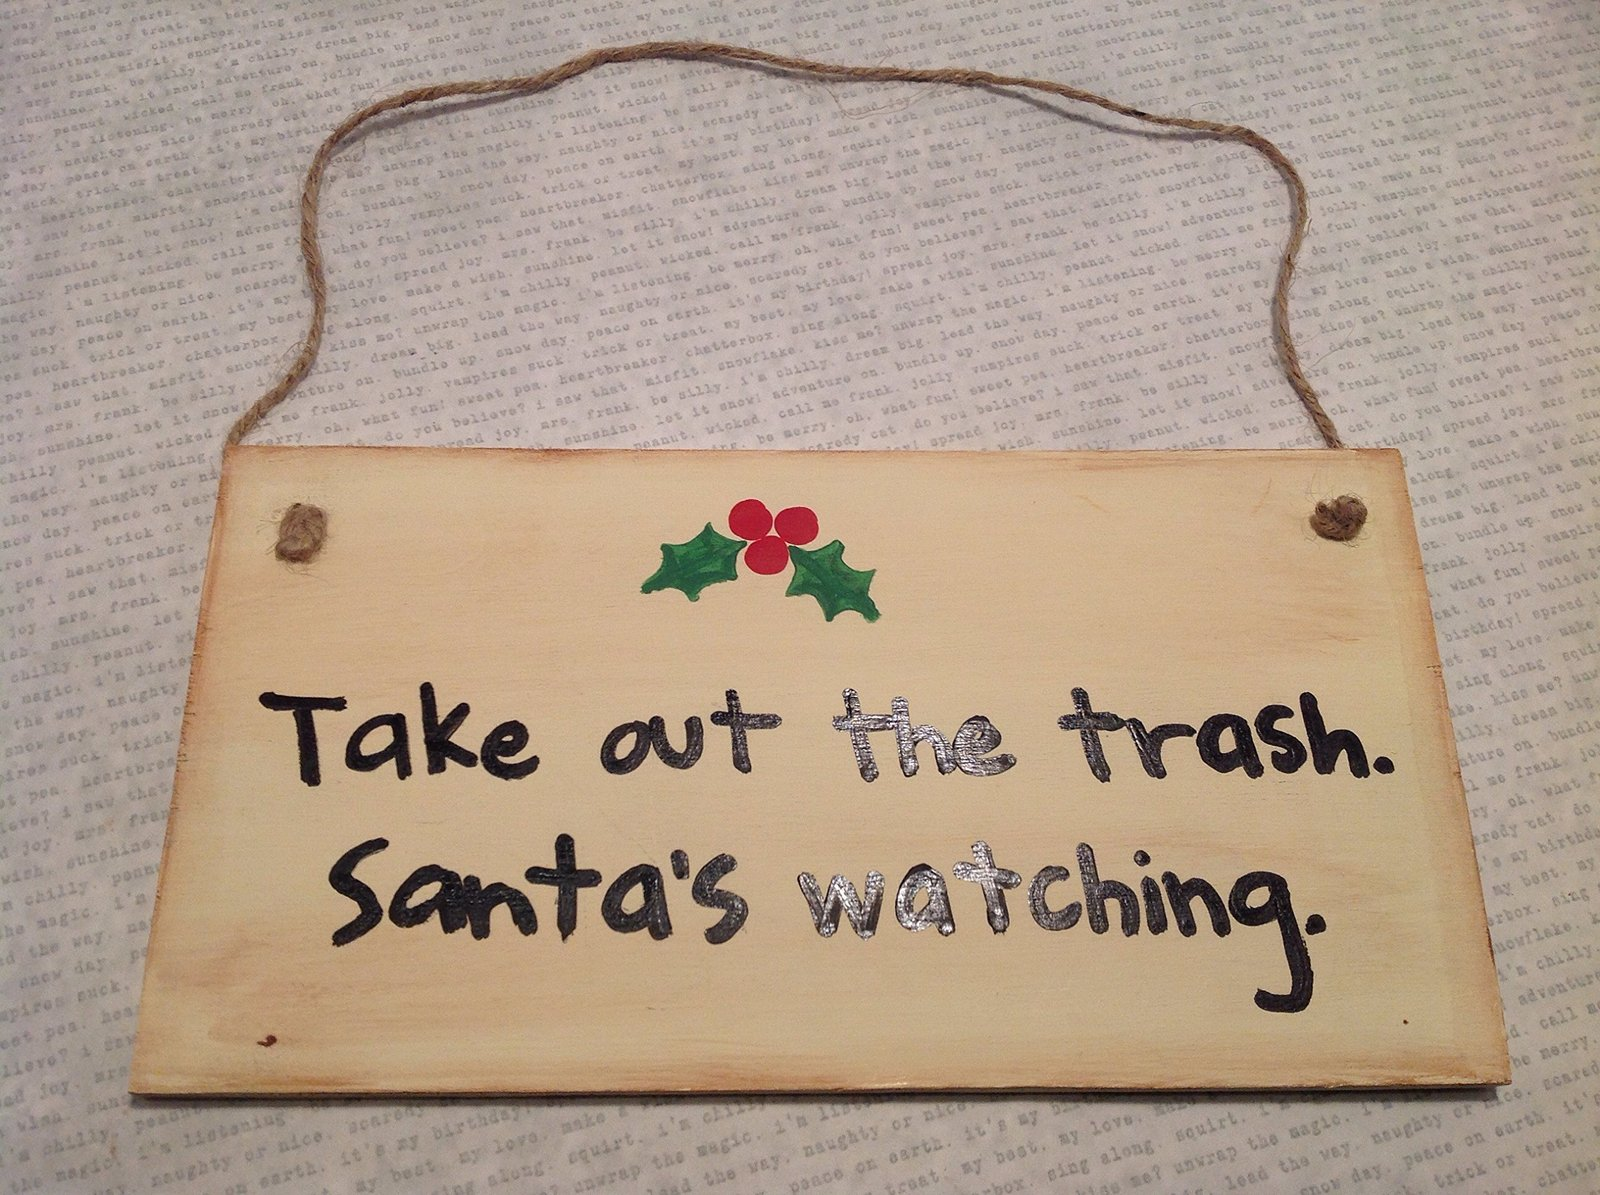 Take Out the Trash. Santa's Watching. Handmade Wooden Wall Plaque by Elf Work...